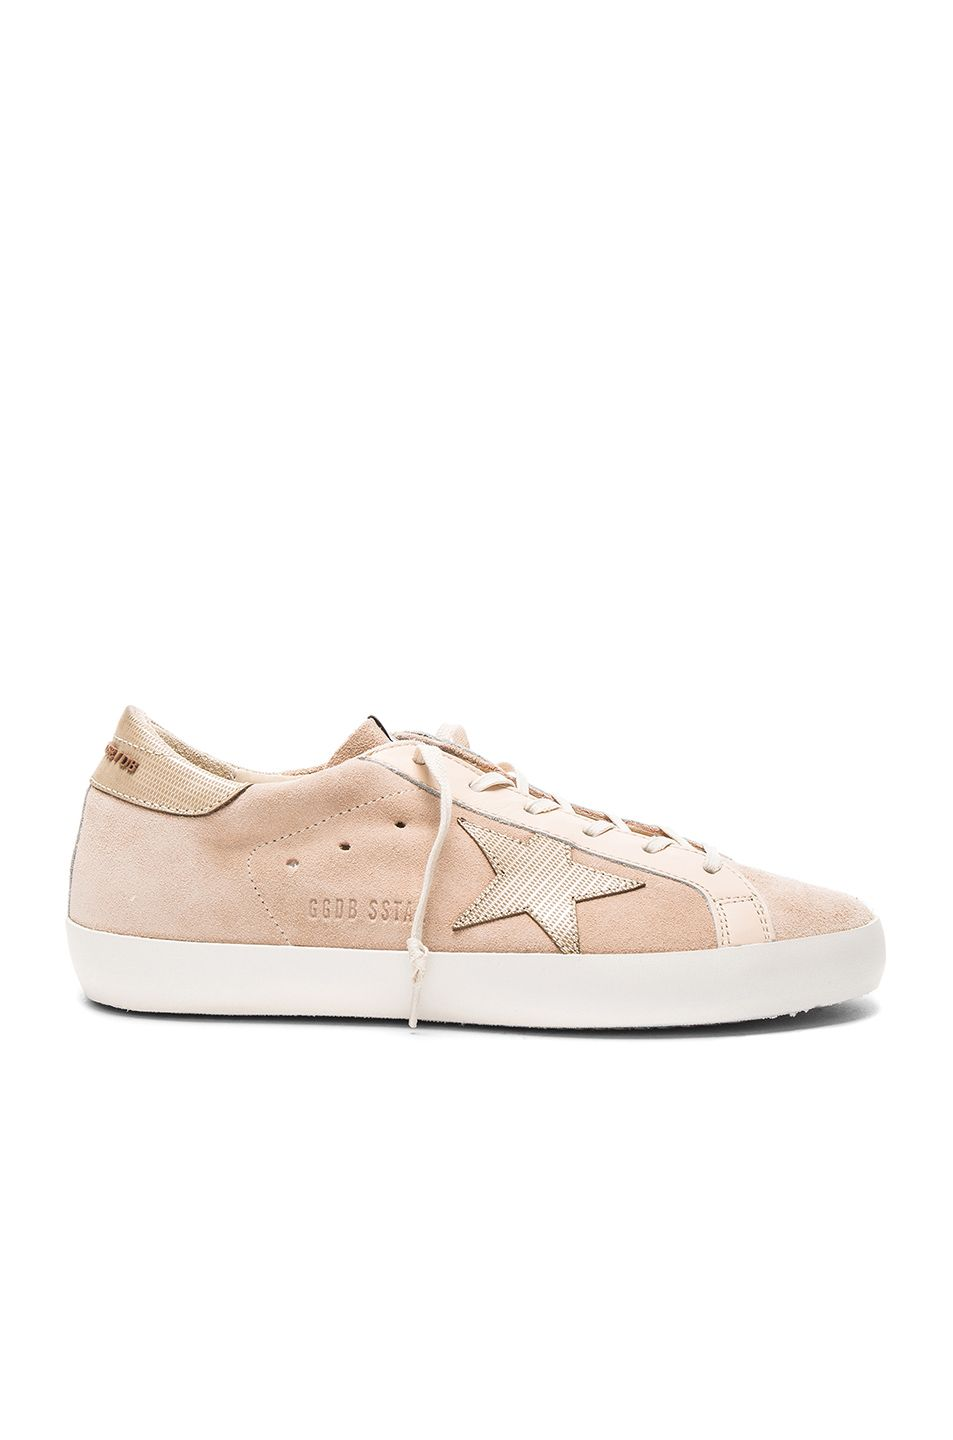 Fashionable Sale Online Golden Goose Superstar Leather And Suede Sneakers The Cheapest Online Genuine Lowest Price Cheap Online DPlhH